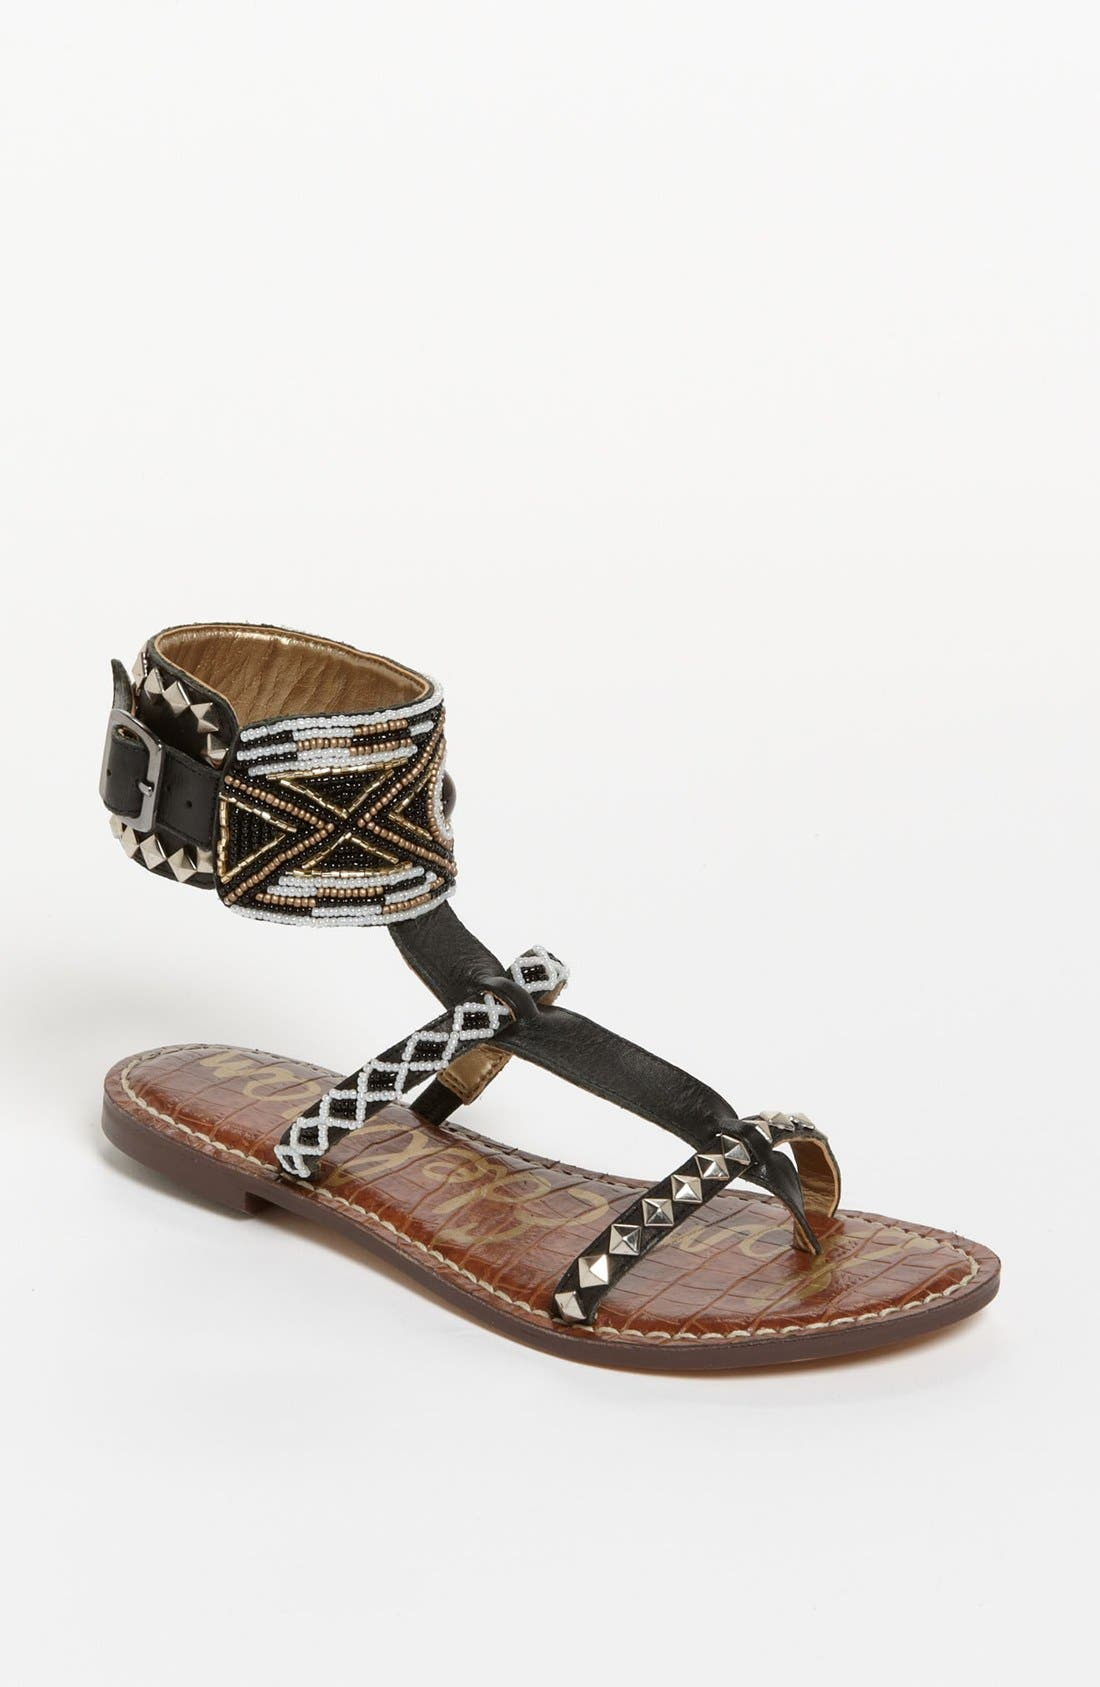 Alternate Image 1 Selected - Sam Edelman 'Gabrianna' Sandal